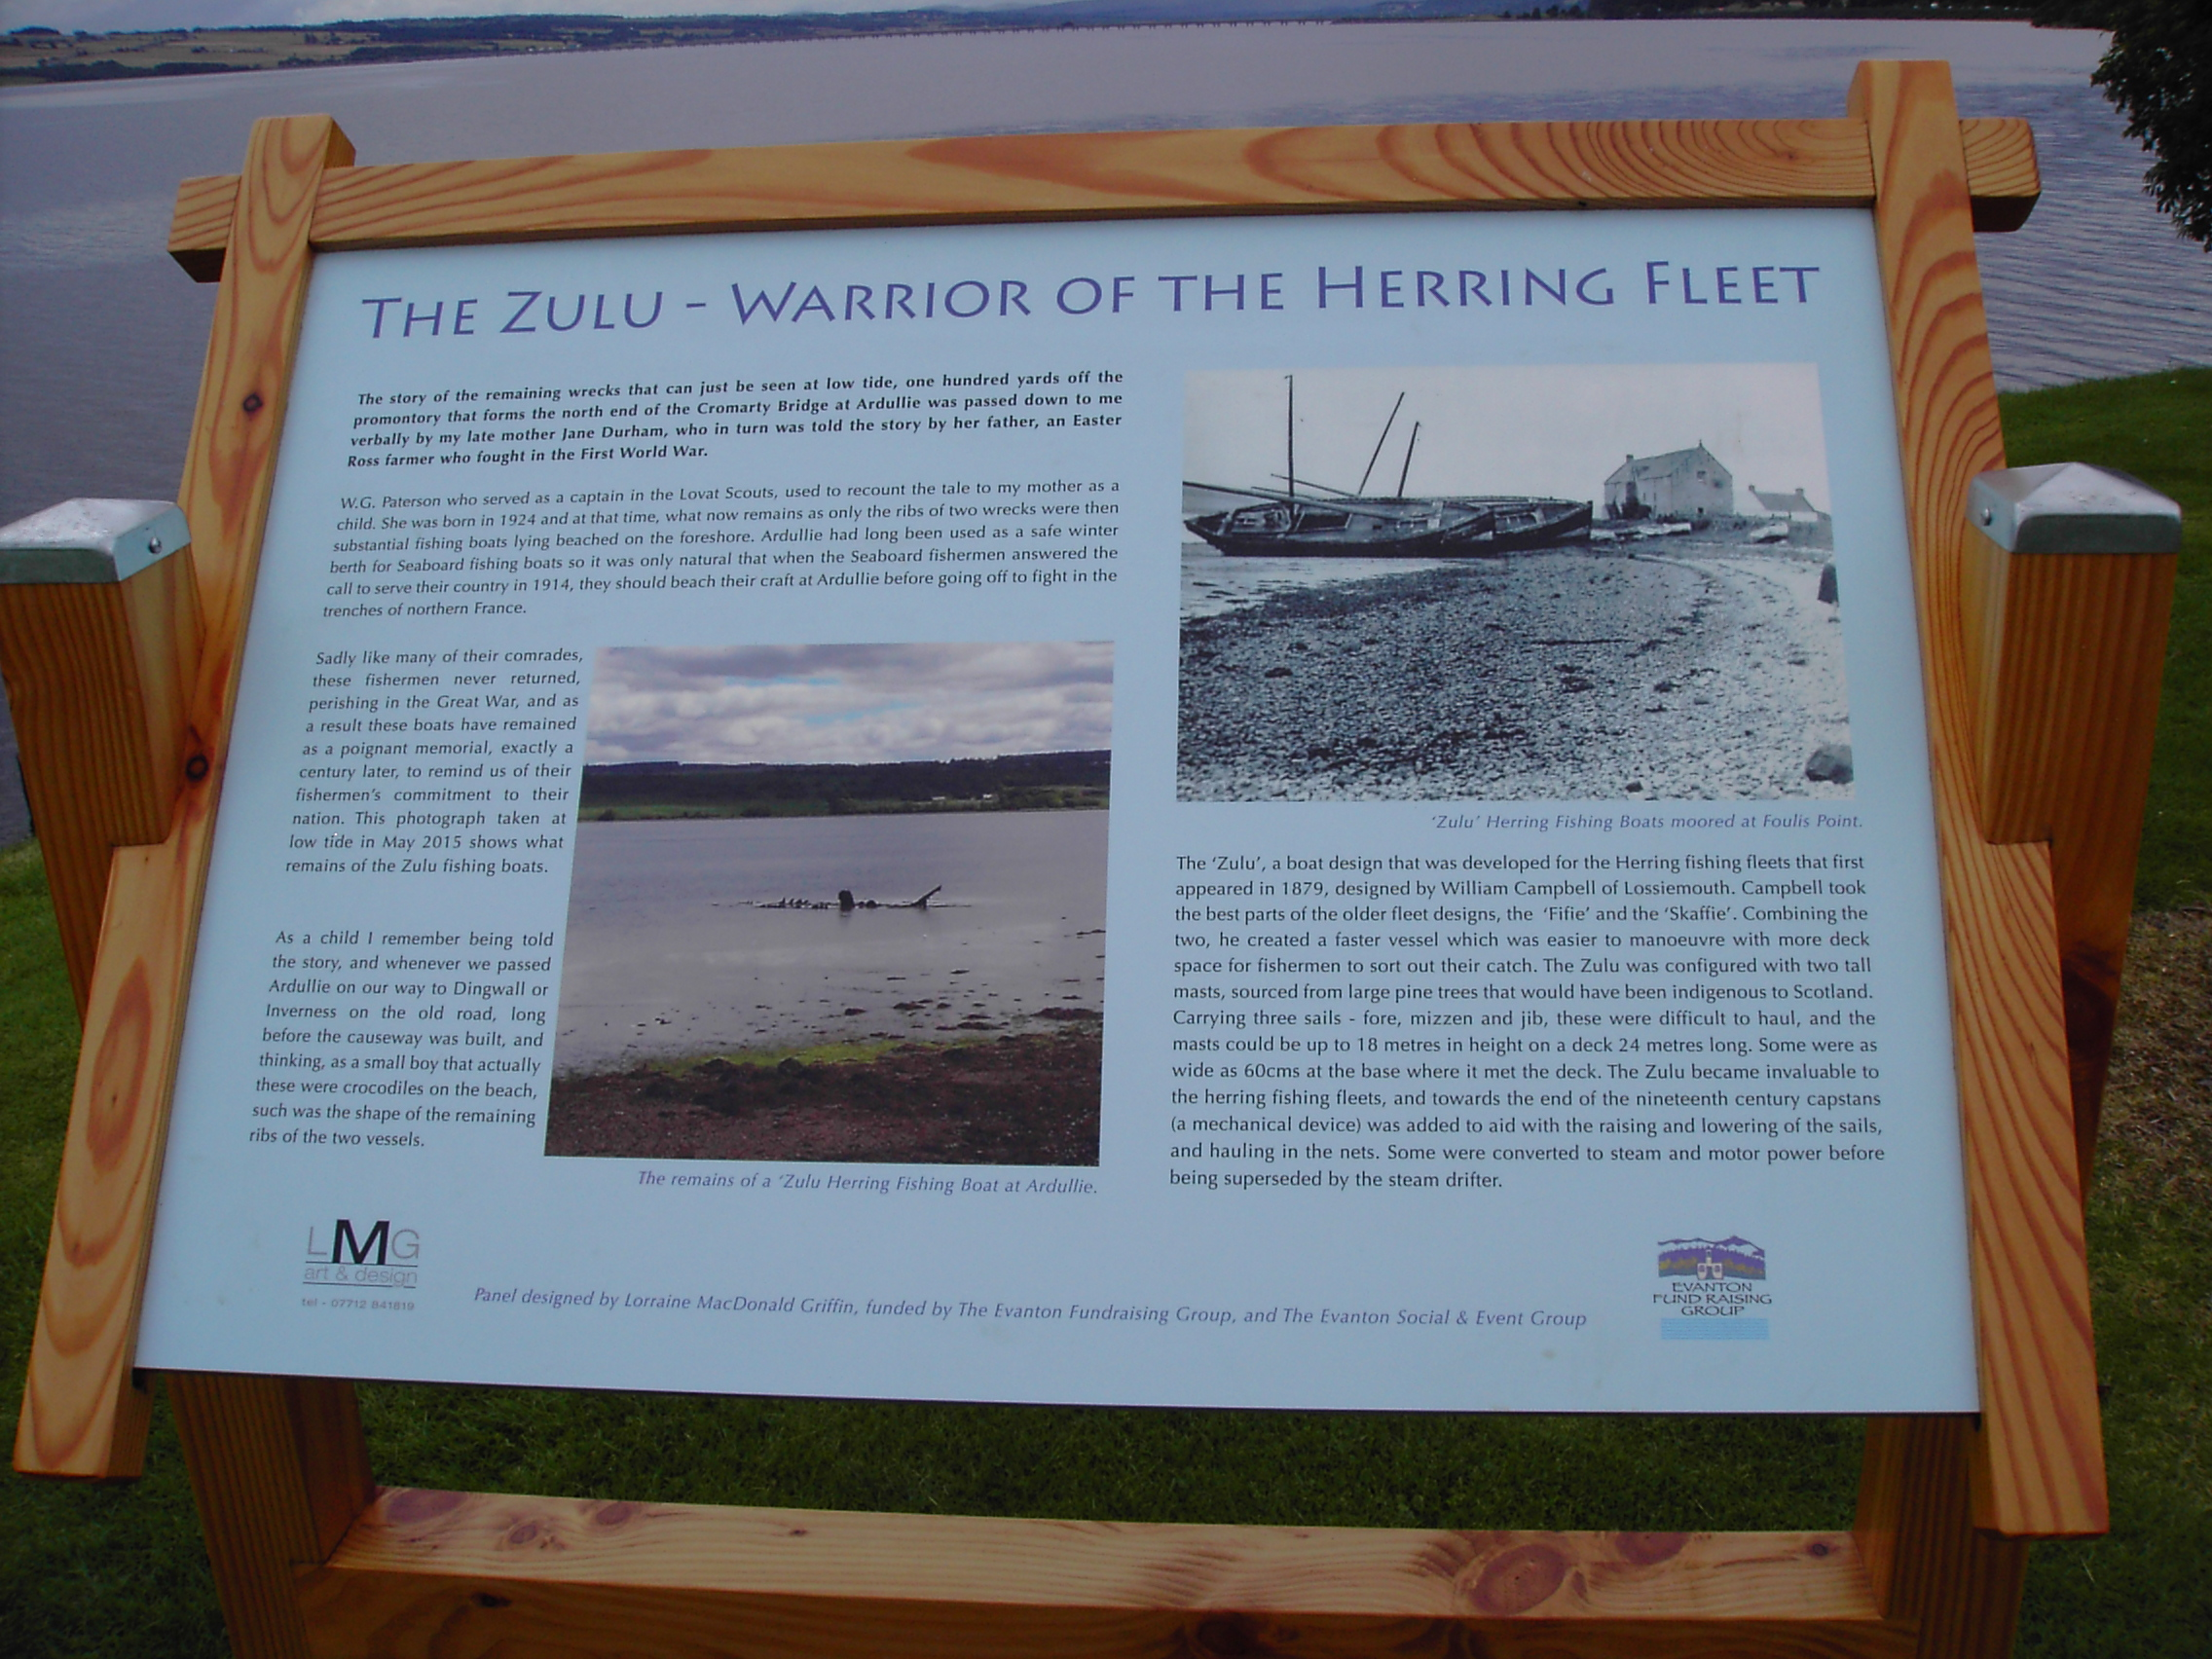 The display board about the Zulu boats